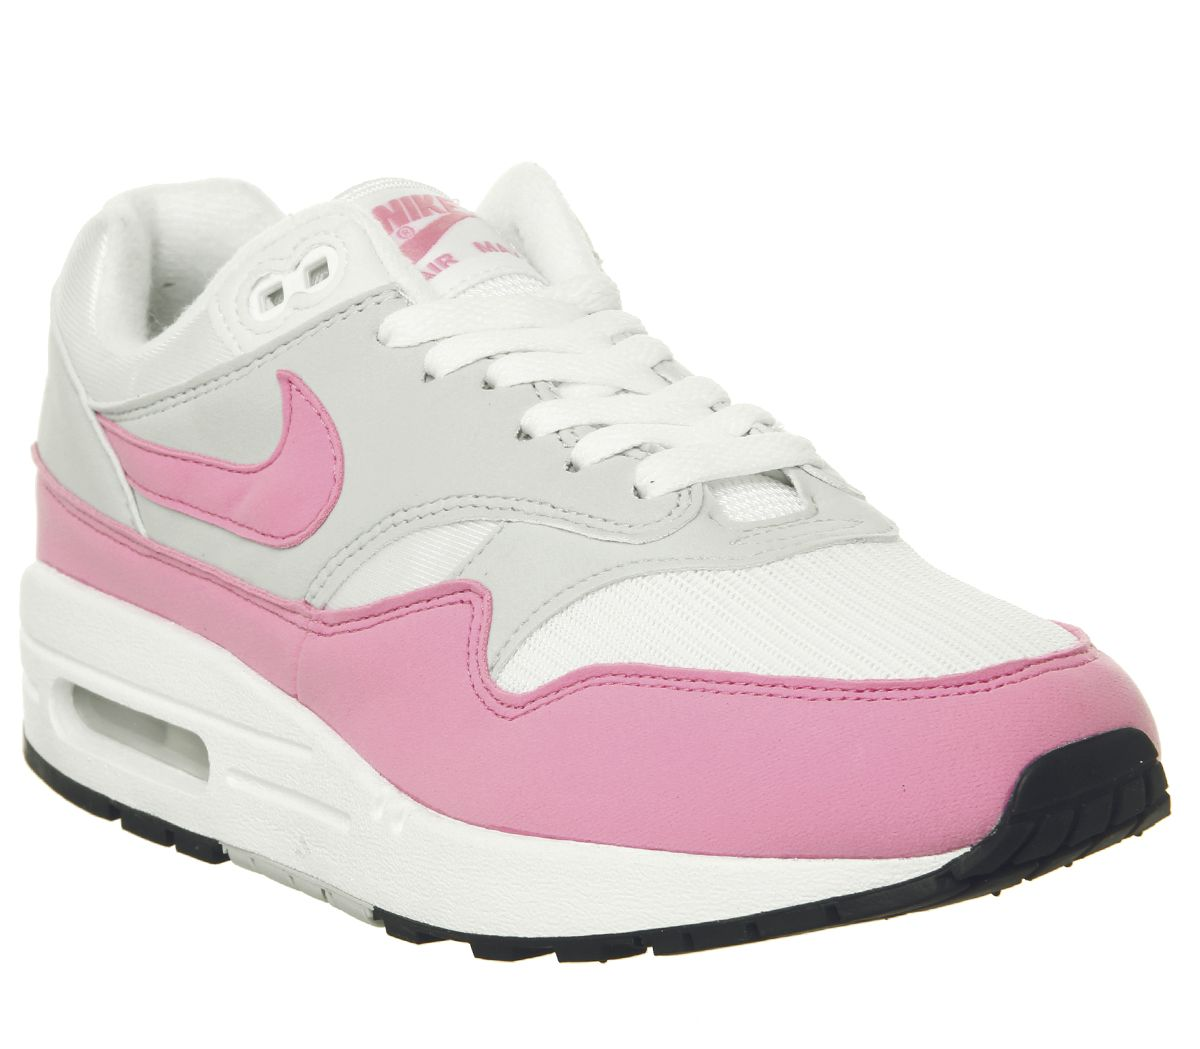 cdc7a3333 Nike Air Max 1 Trainers White Psychic Pink - Hers trainers